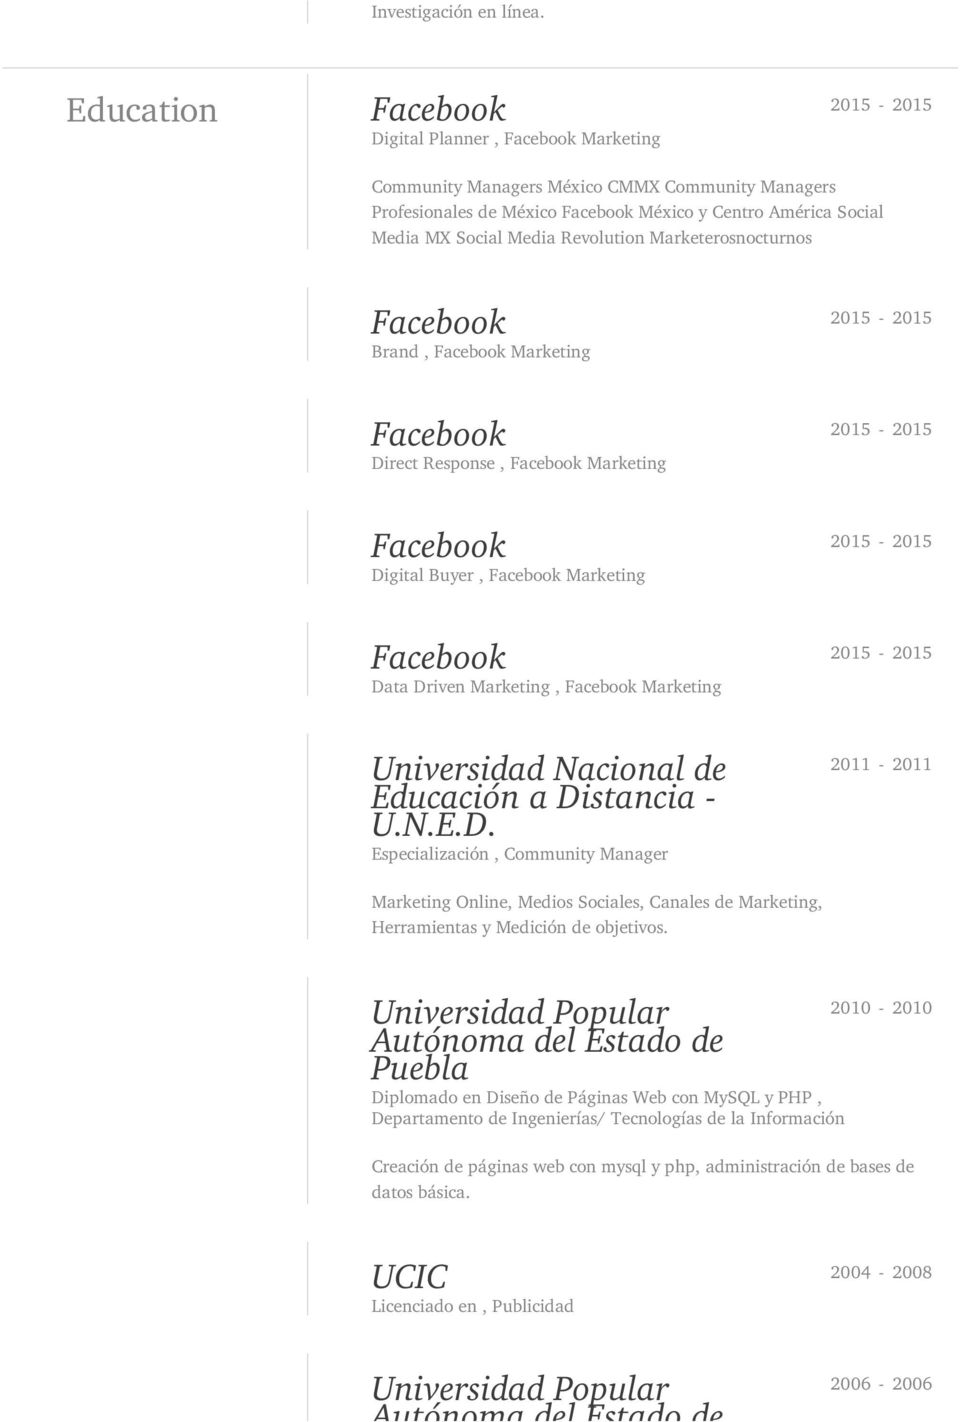 Brand, Marketing Direct Response, Marketing Digital Buyer, Marketing Data Driven Marketing, Marketing Universidad Nacional de Educación a Distancia - U.N.E.D. Especialización, Community Manager 2011-2011 Marketing Online, Medios Sociales, Canales de Marketing, Herramientas y Medición de objetivos.